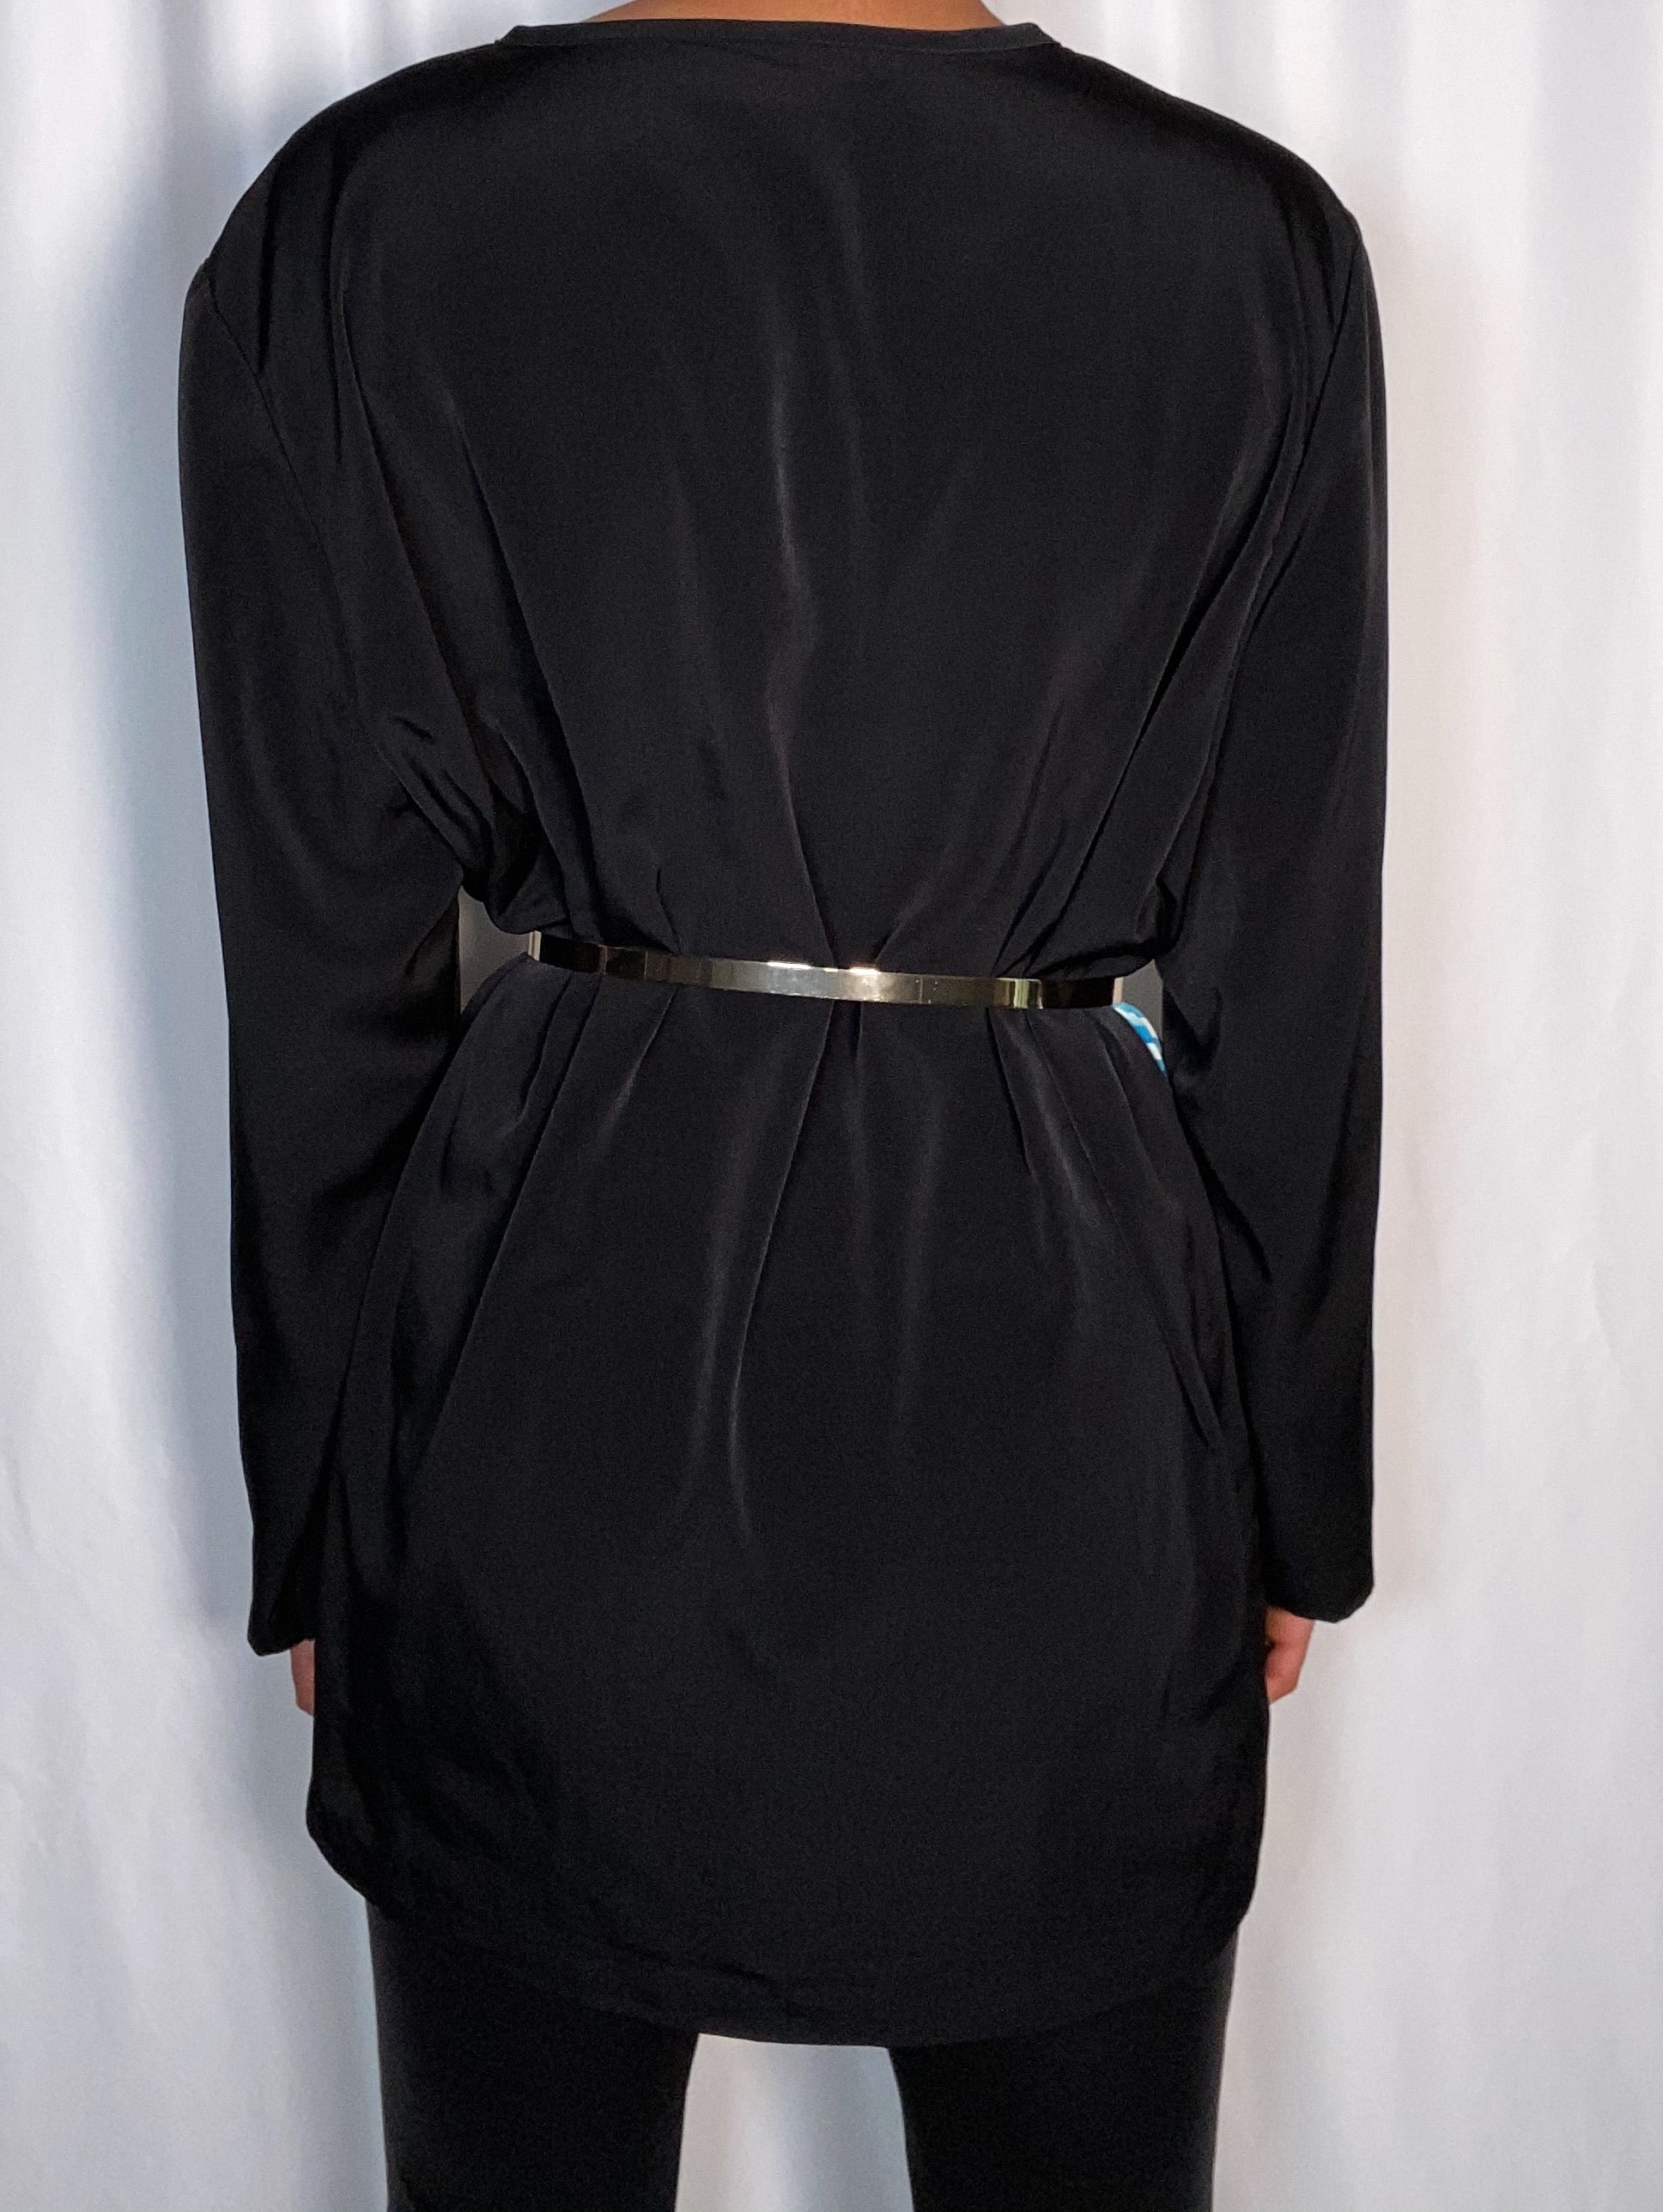 Vintage Sharon Anthony Top (size 18W)